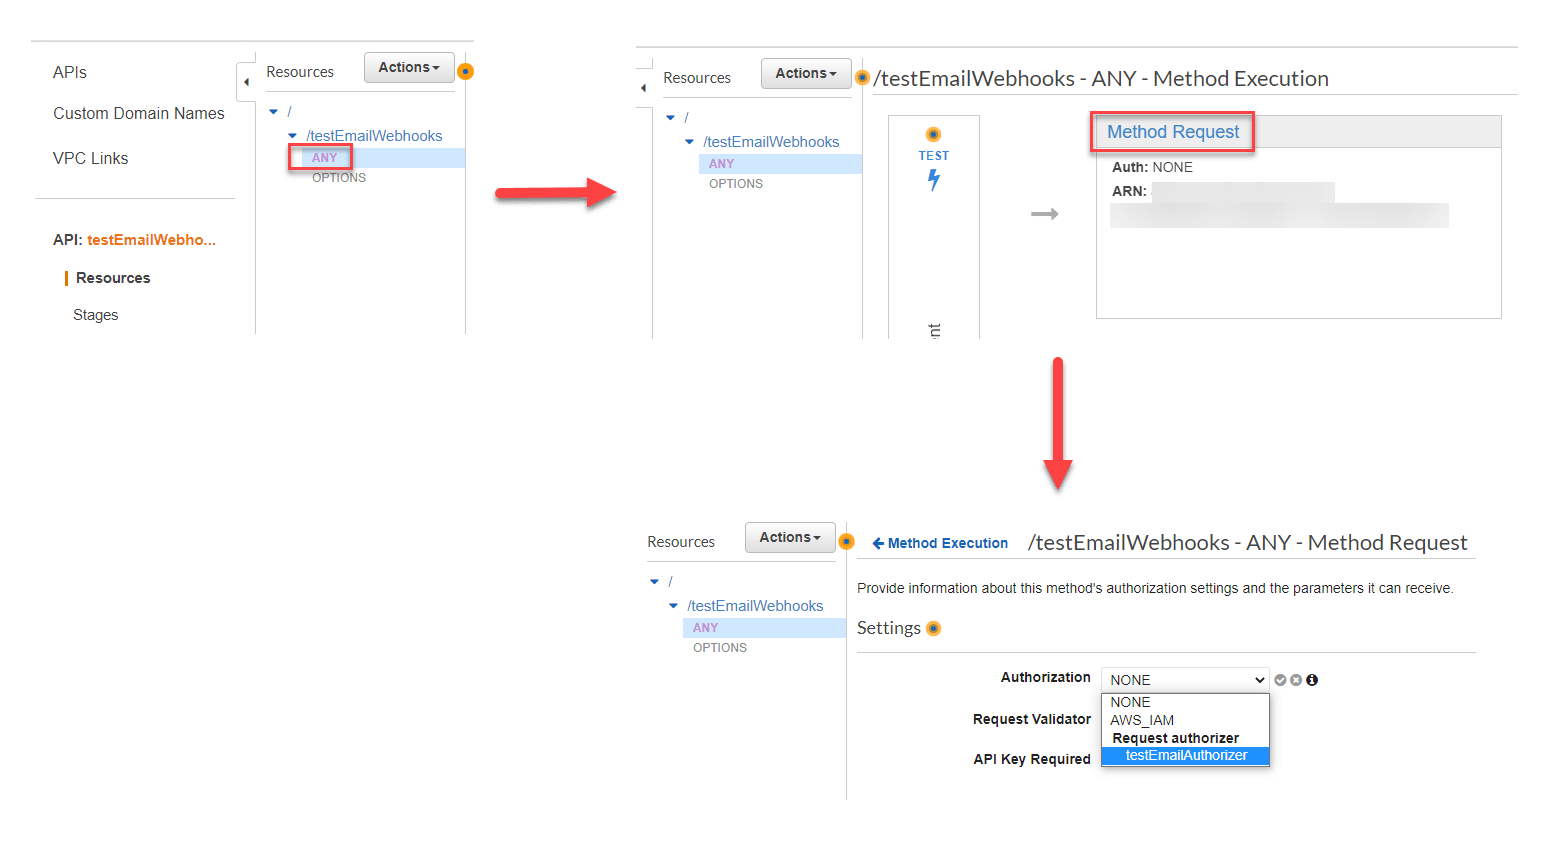 The process to add an authorizer to the ANY Method Request.